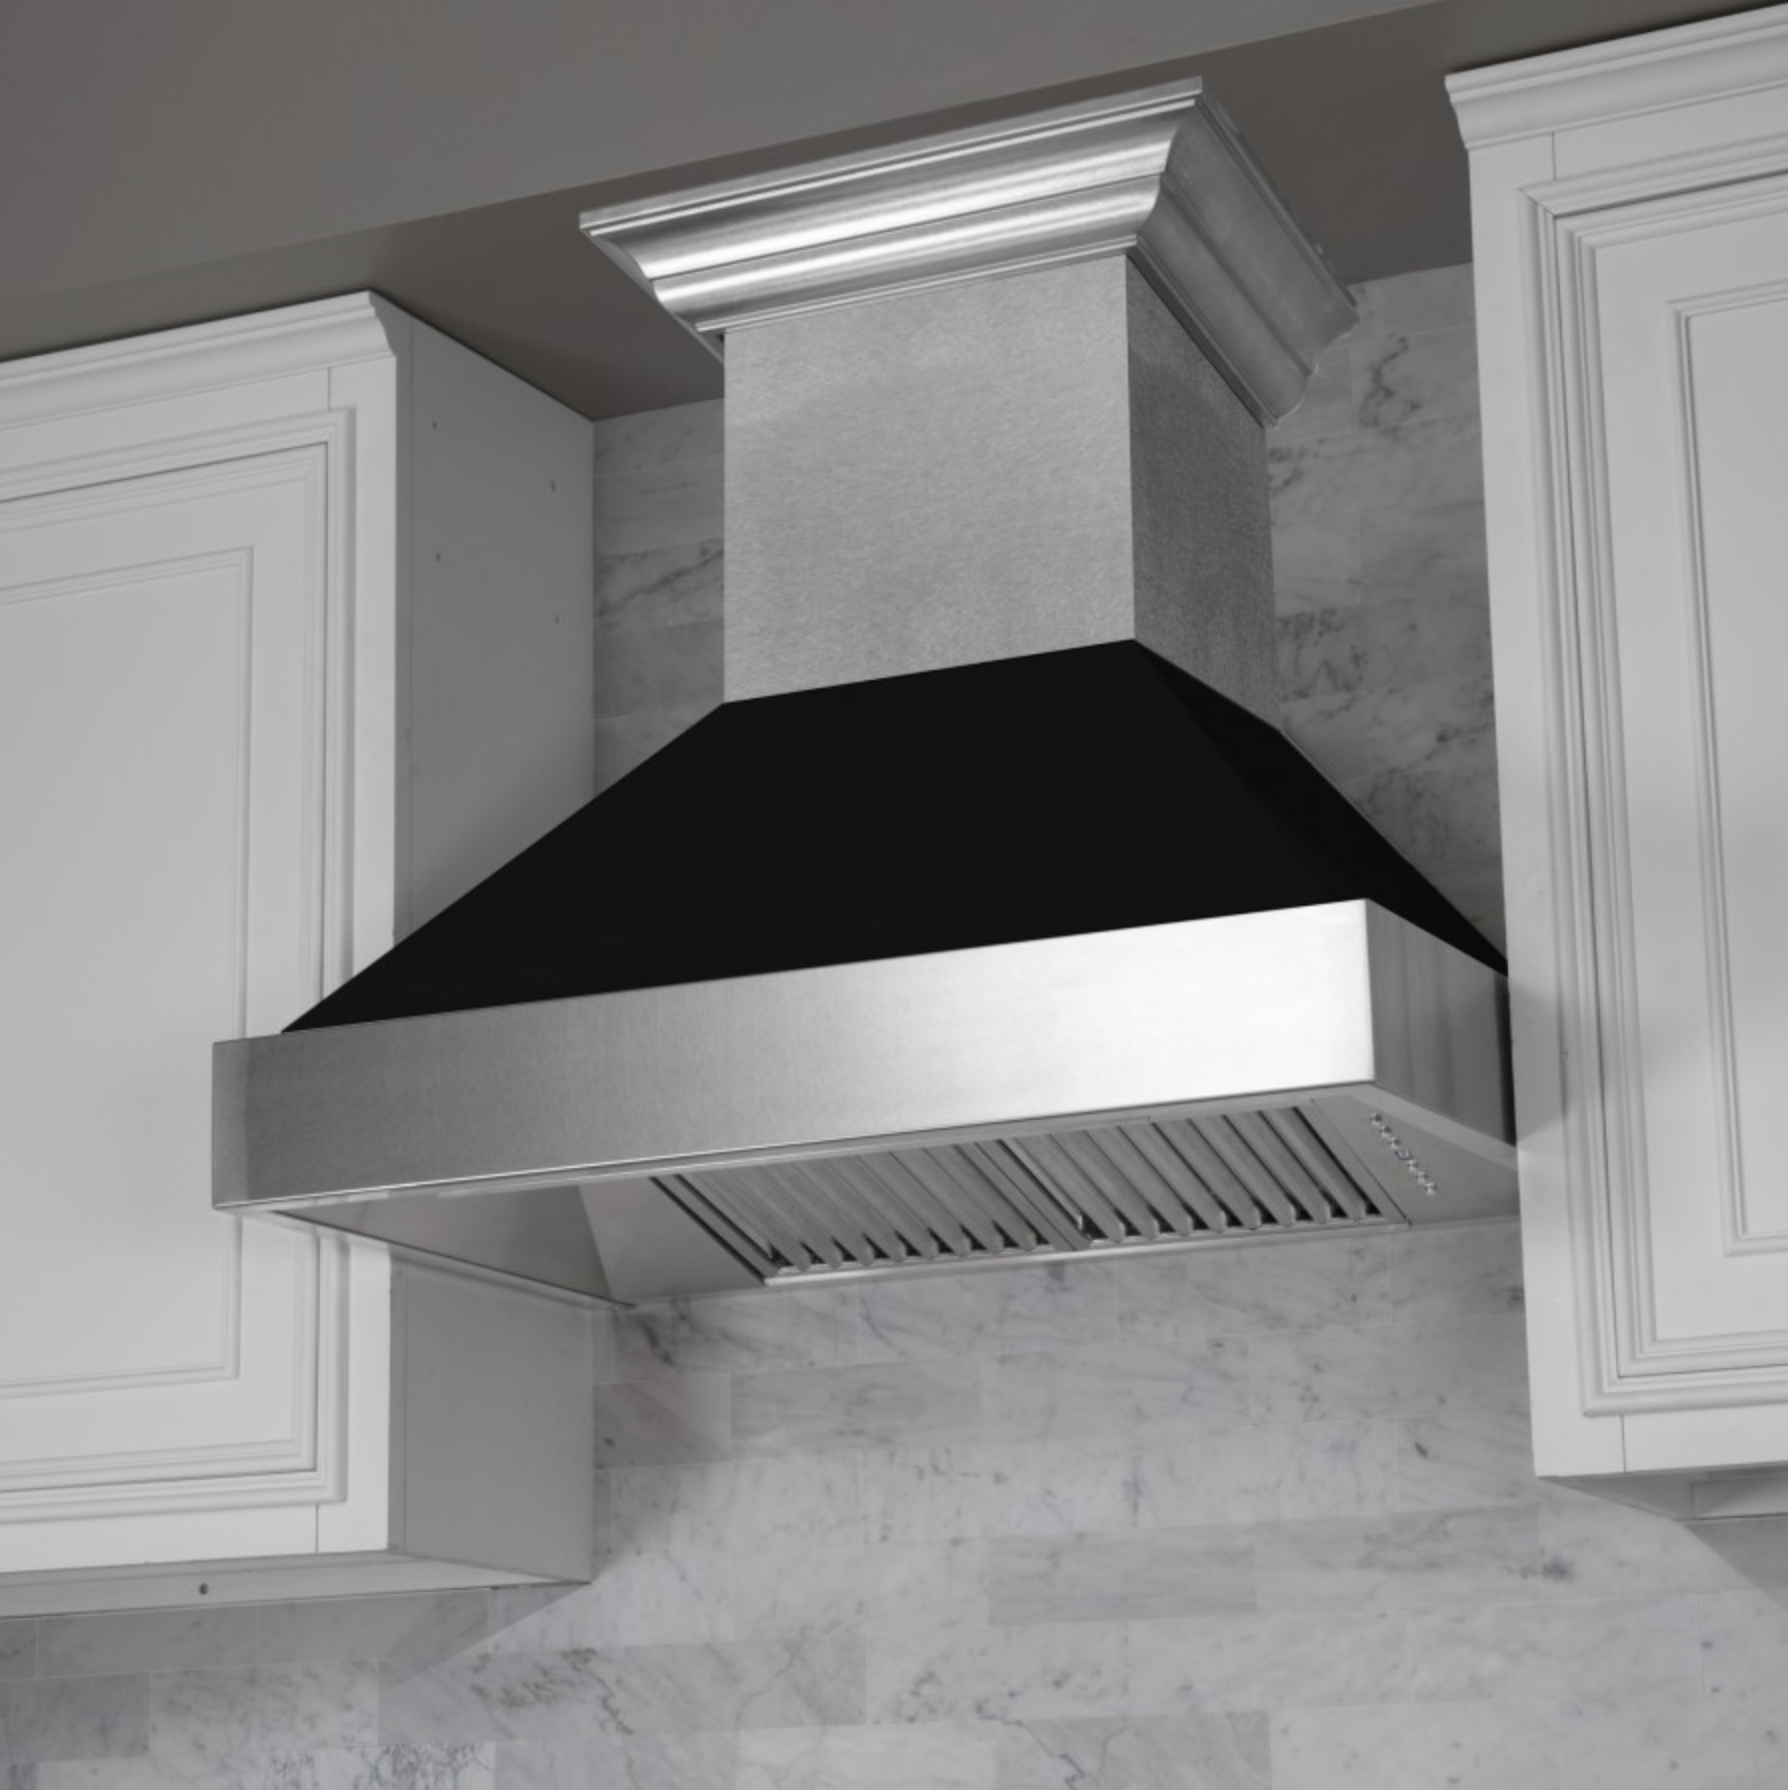 Great For Customization This Range Hood Gives You The